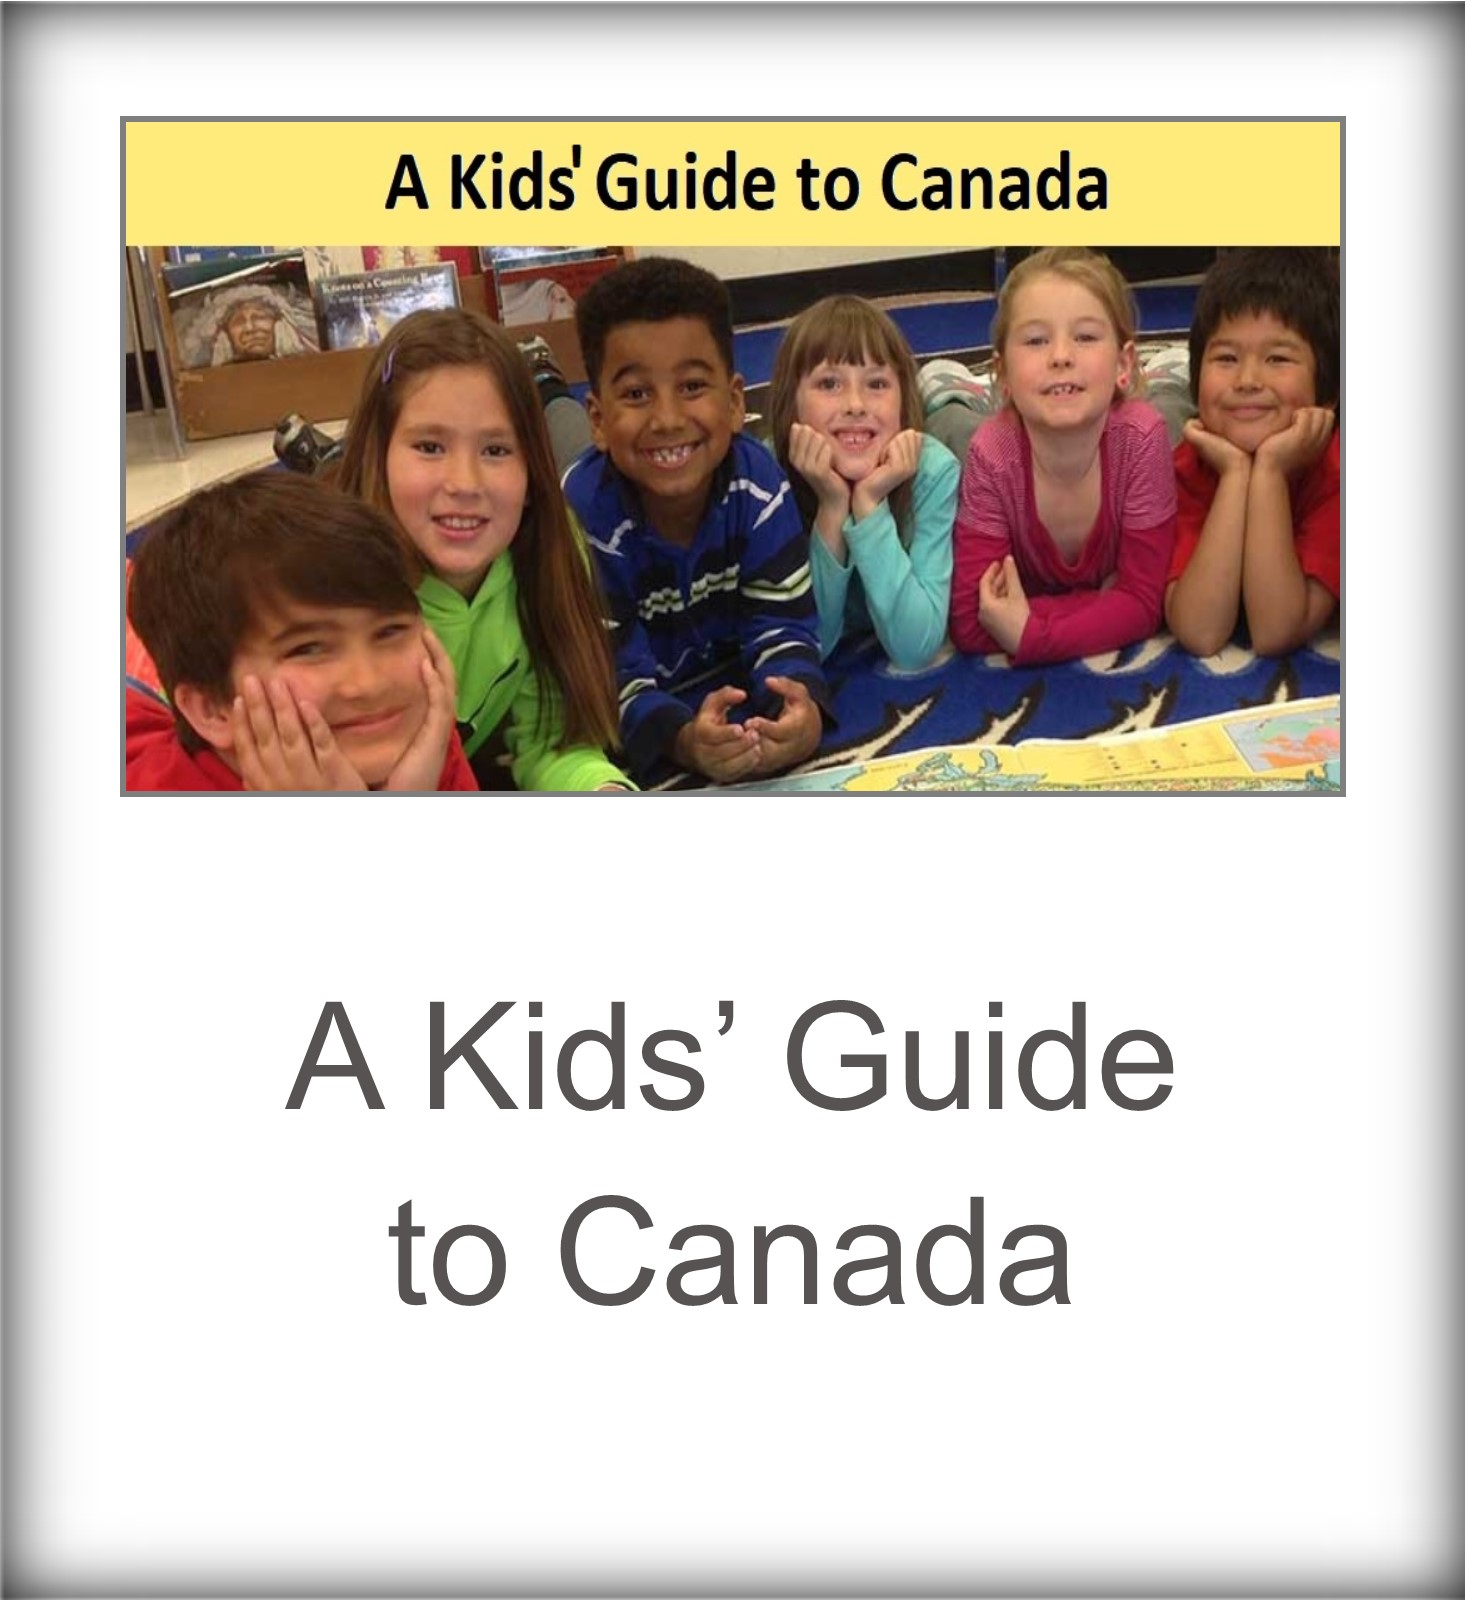 Kids' Guide to Canada, A